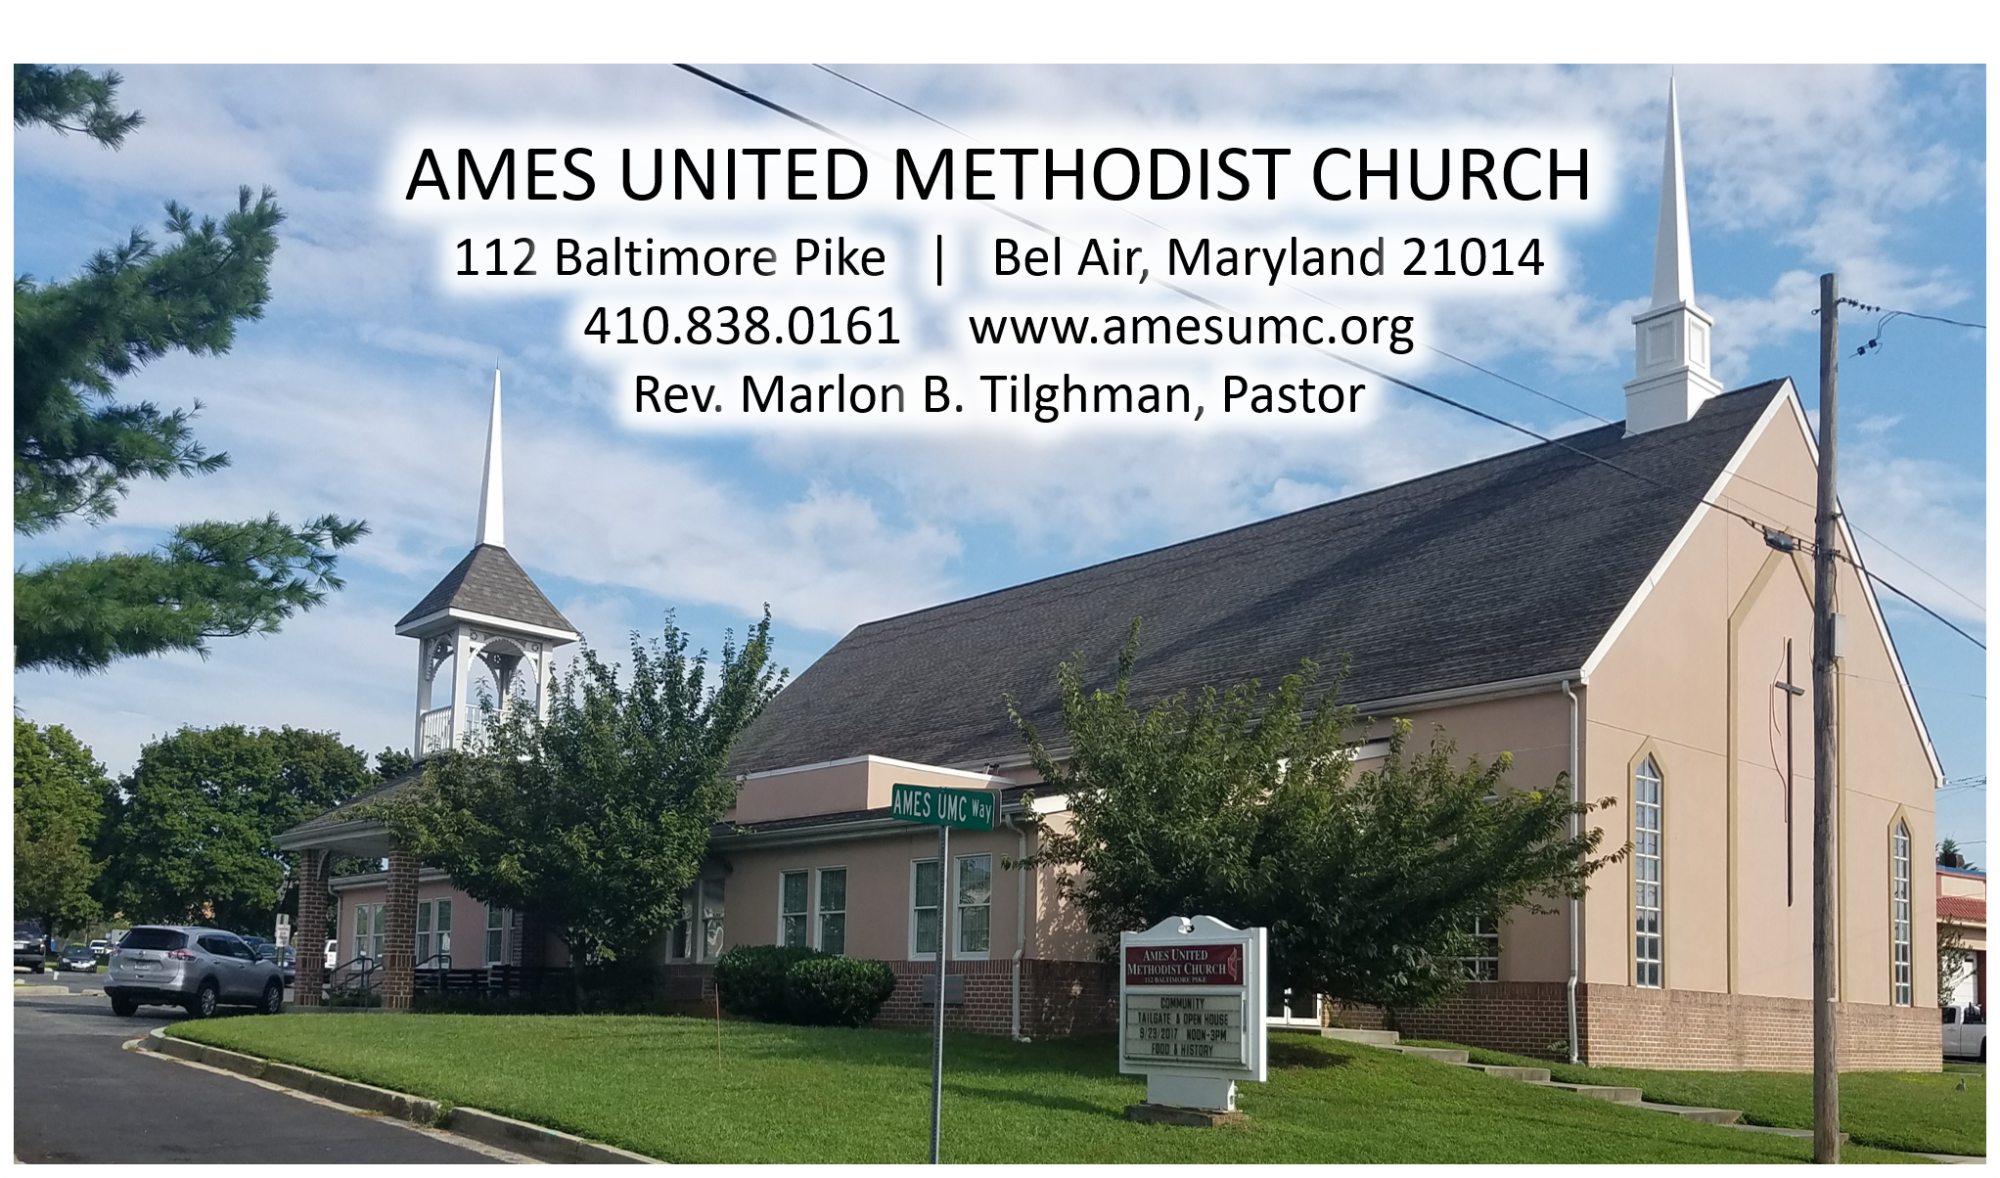 Ames_UMC_photo8087.png